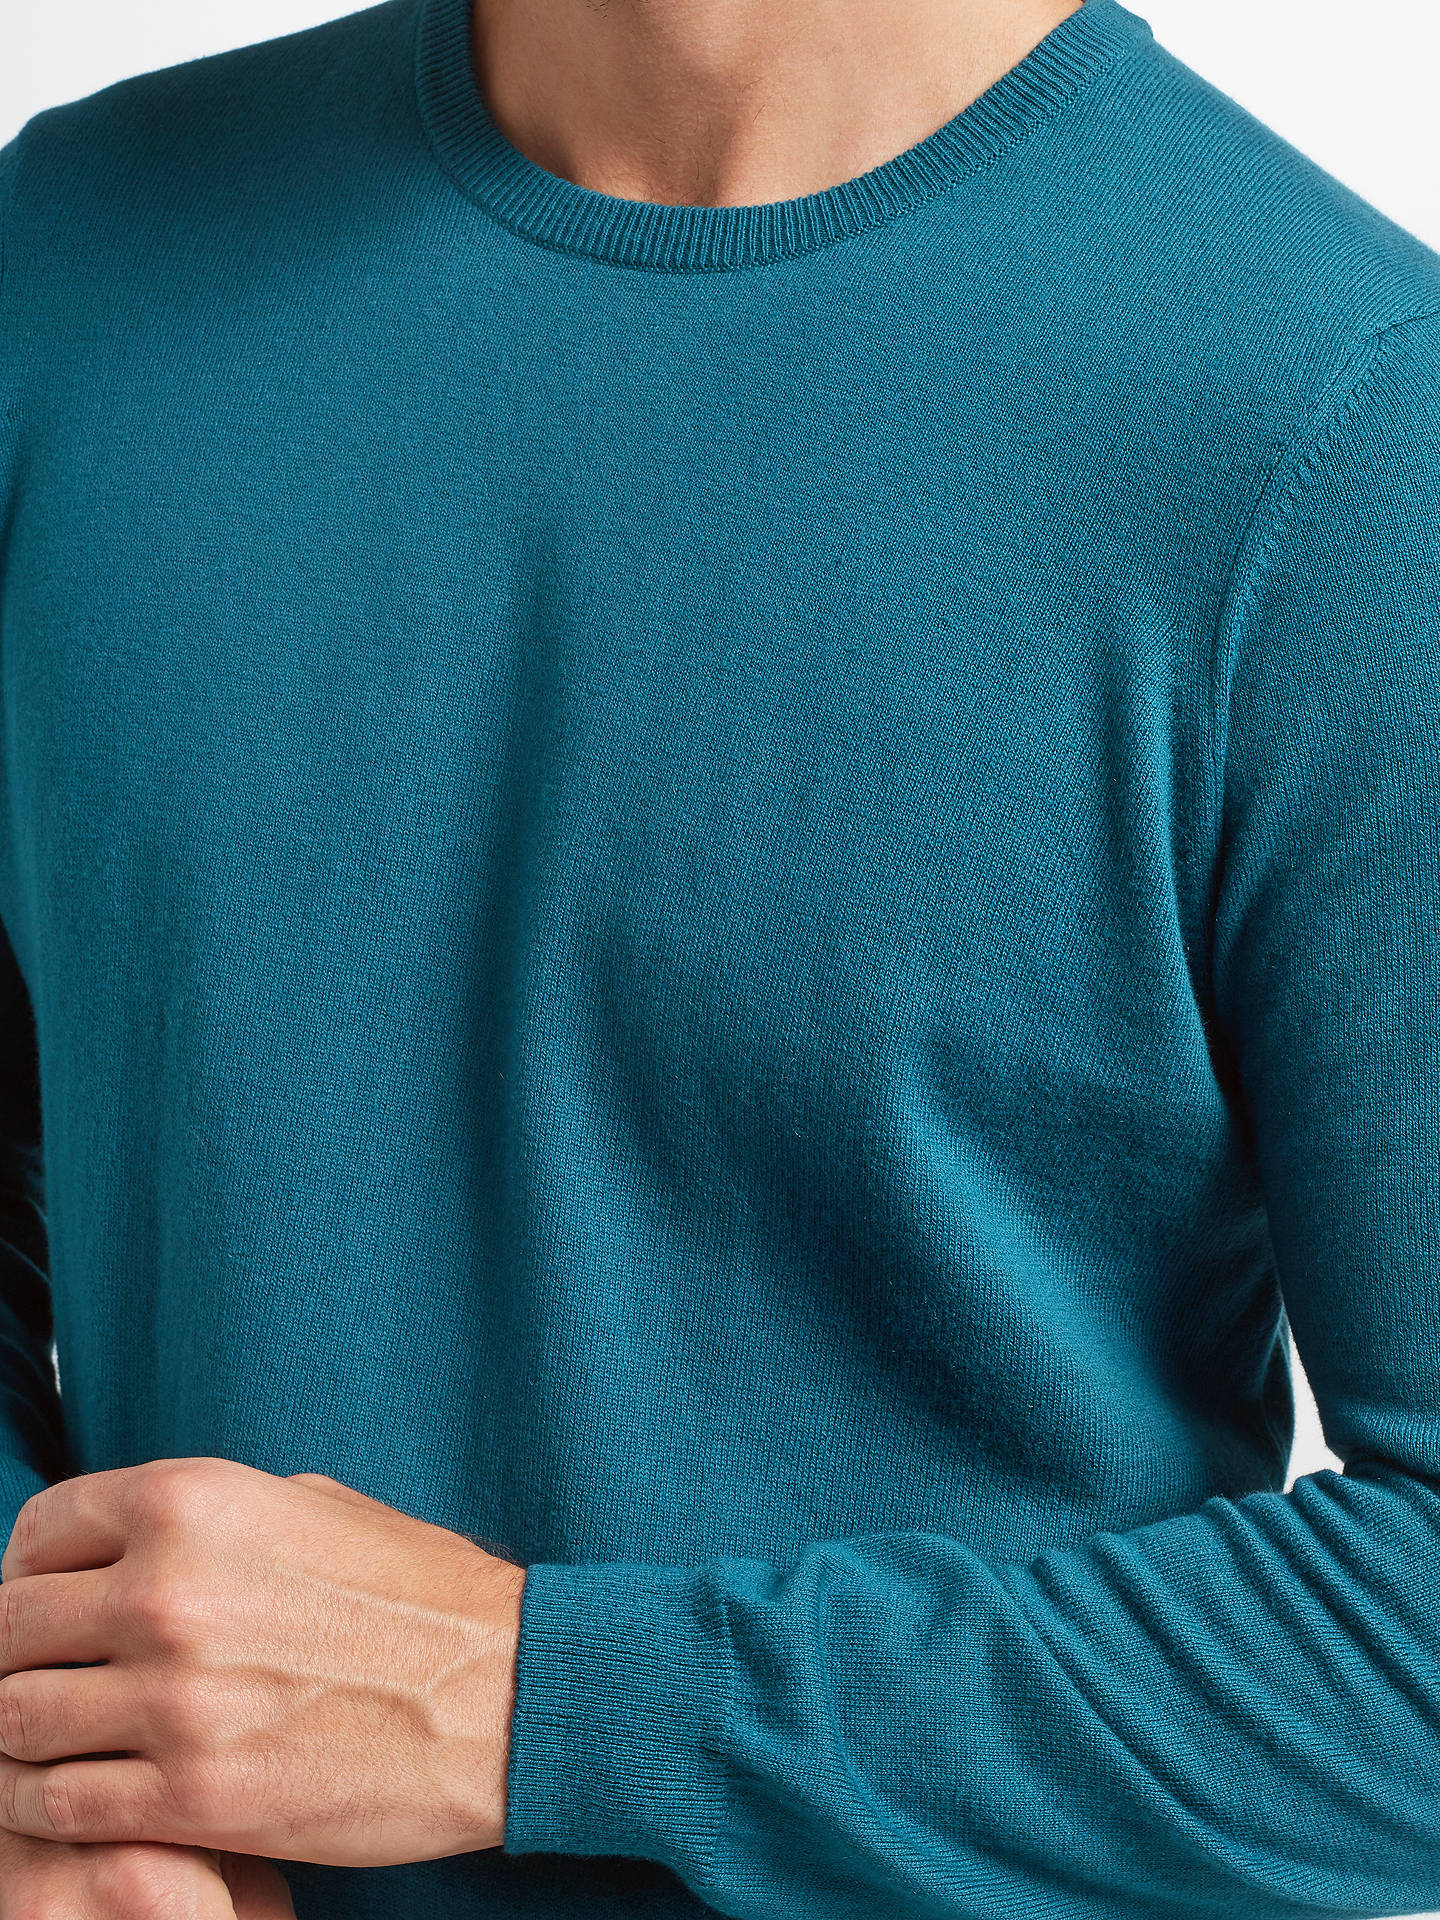 Buy John Lewis & Partners Cotton Cashmere Crew Neck Jumper, Teal, L Online at johnlewis.com